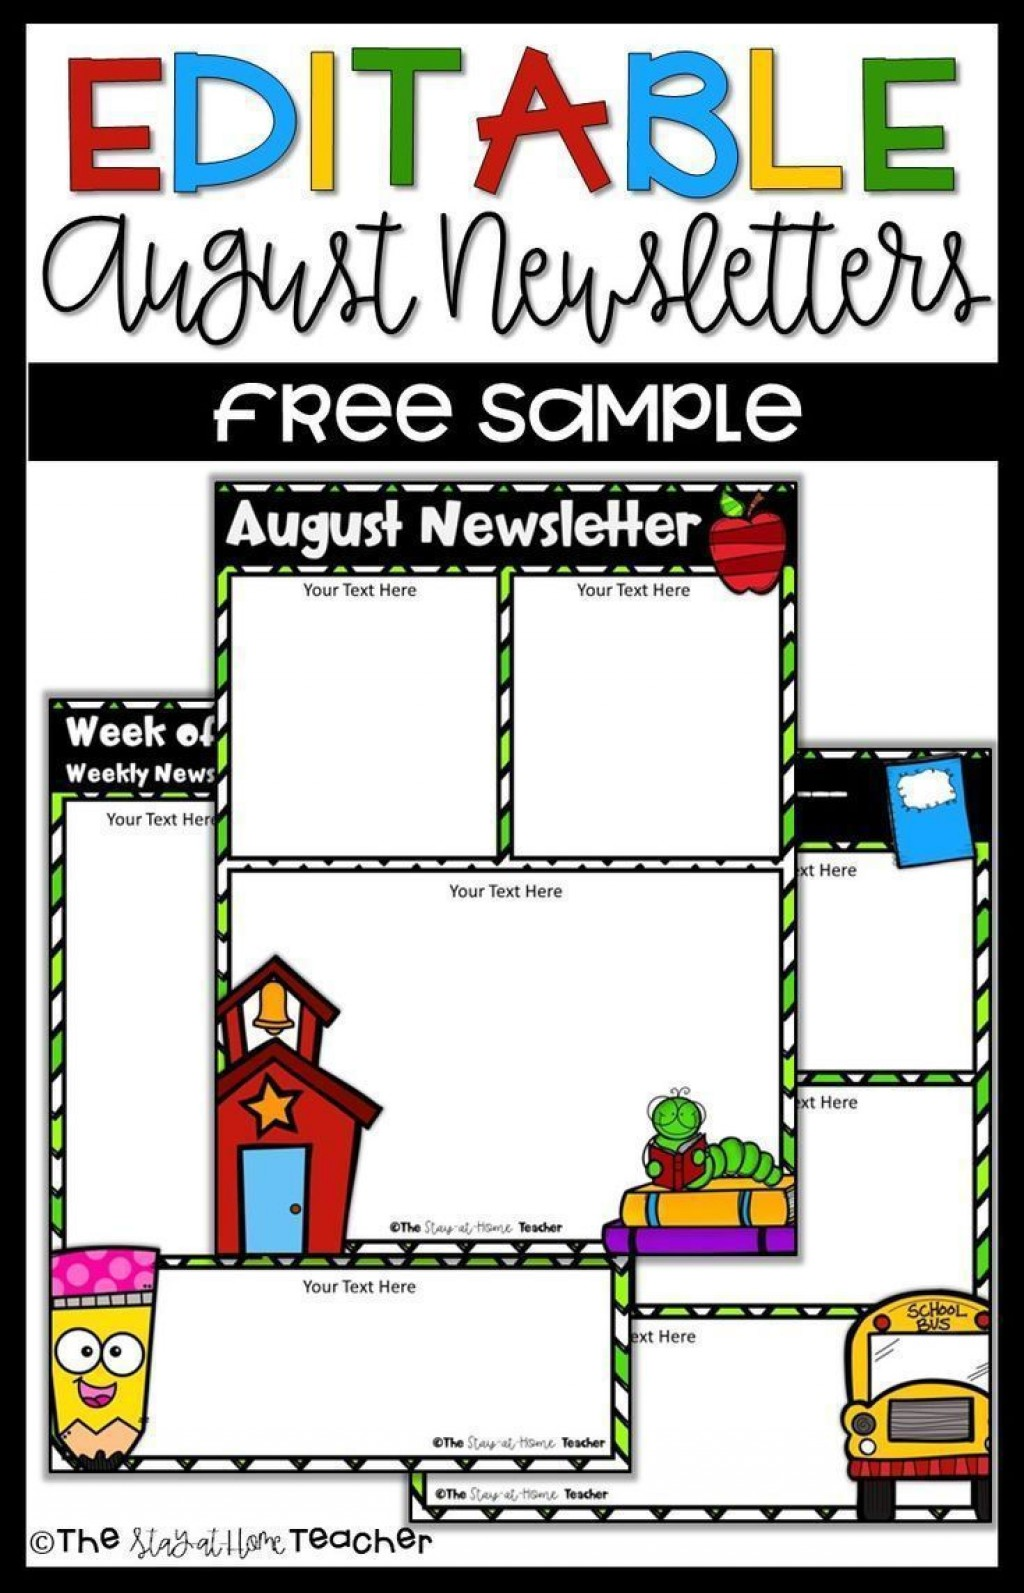 002 Formidable Weekly Newsletter Template For Teacher Free Picture Large